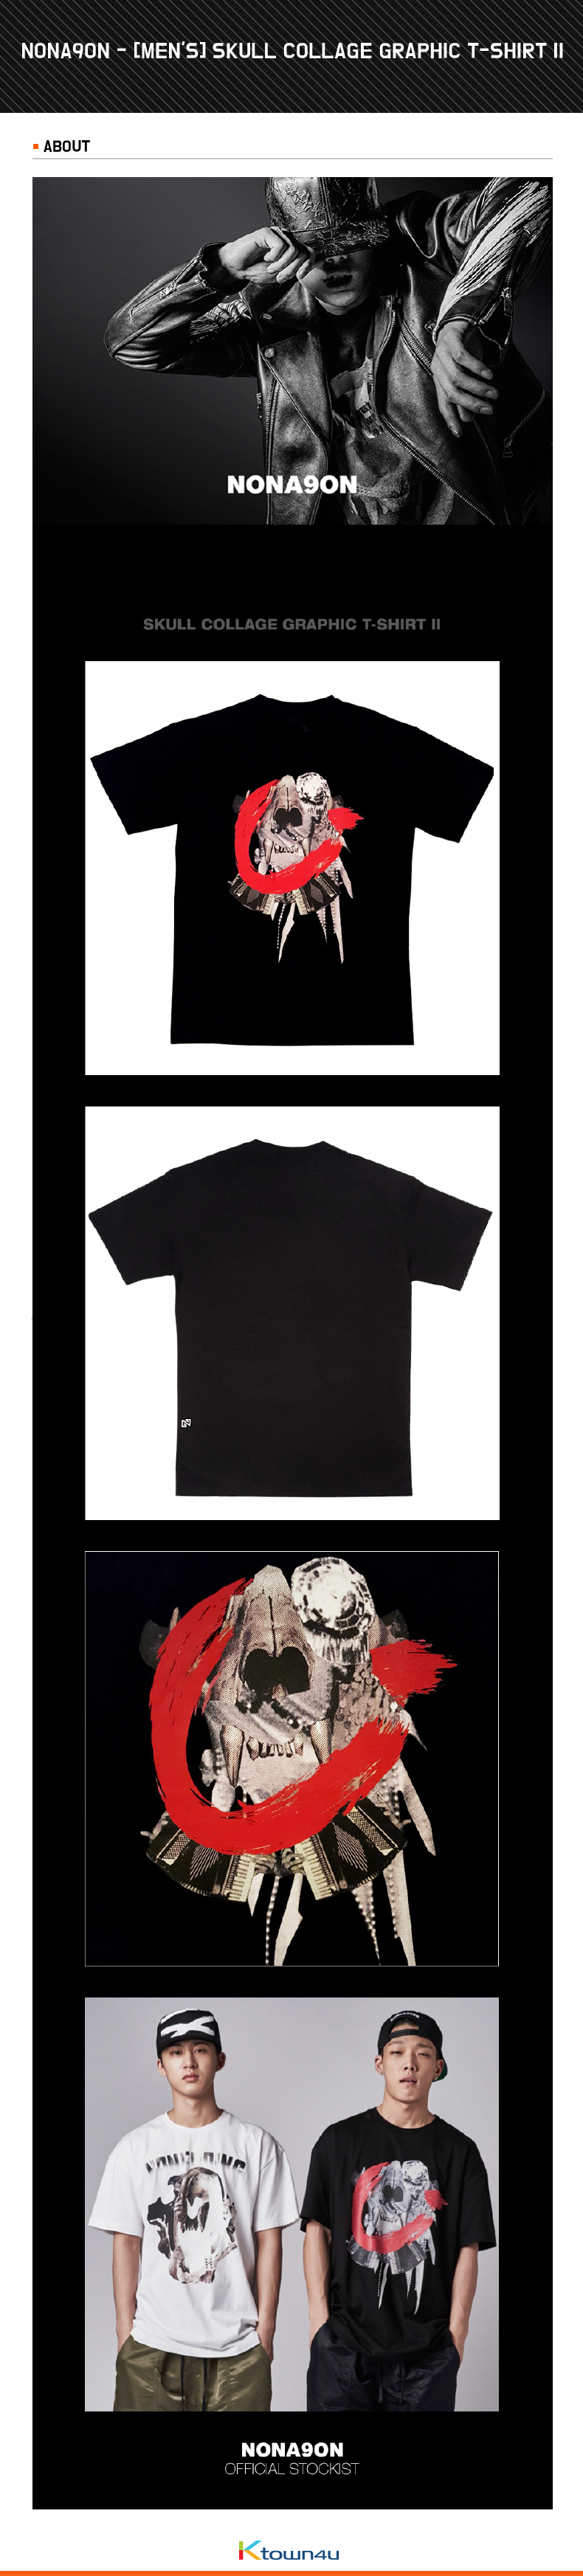 [iKON BOBBY, B.I] NONA9ON - [MEN'S] SKULL COLLAGE GRAPHIC T-SHIRT II